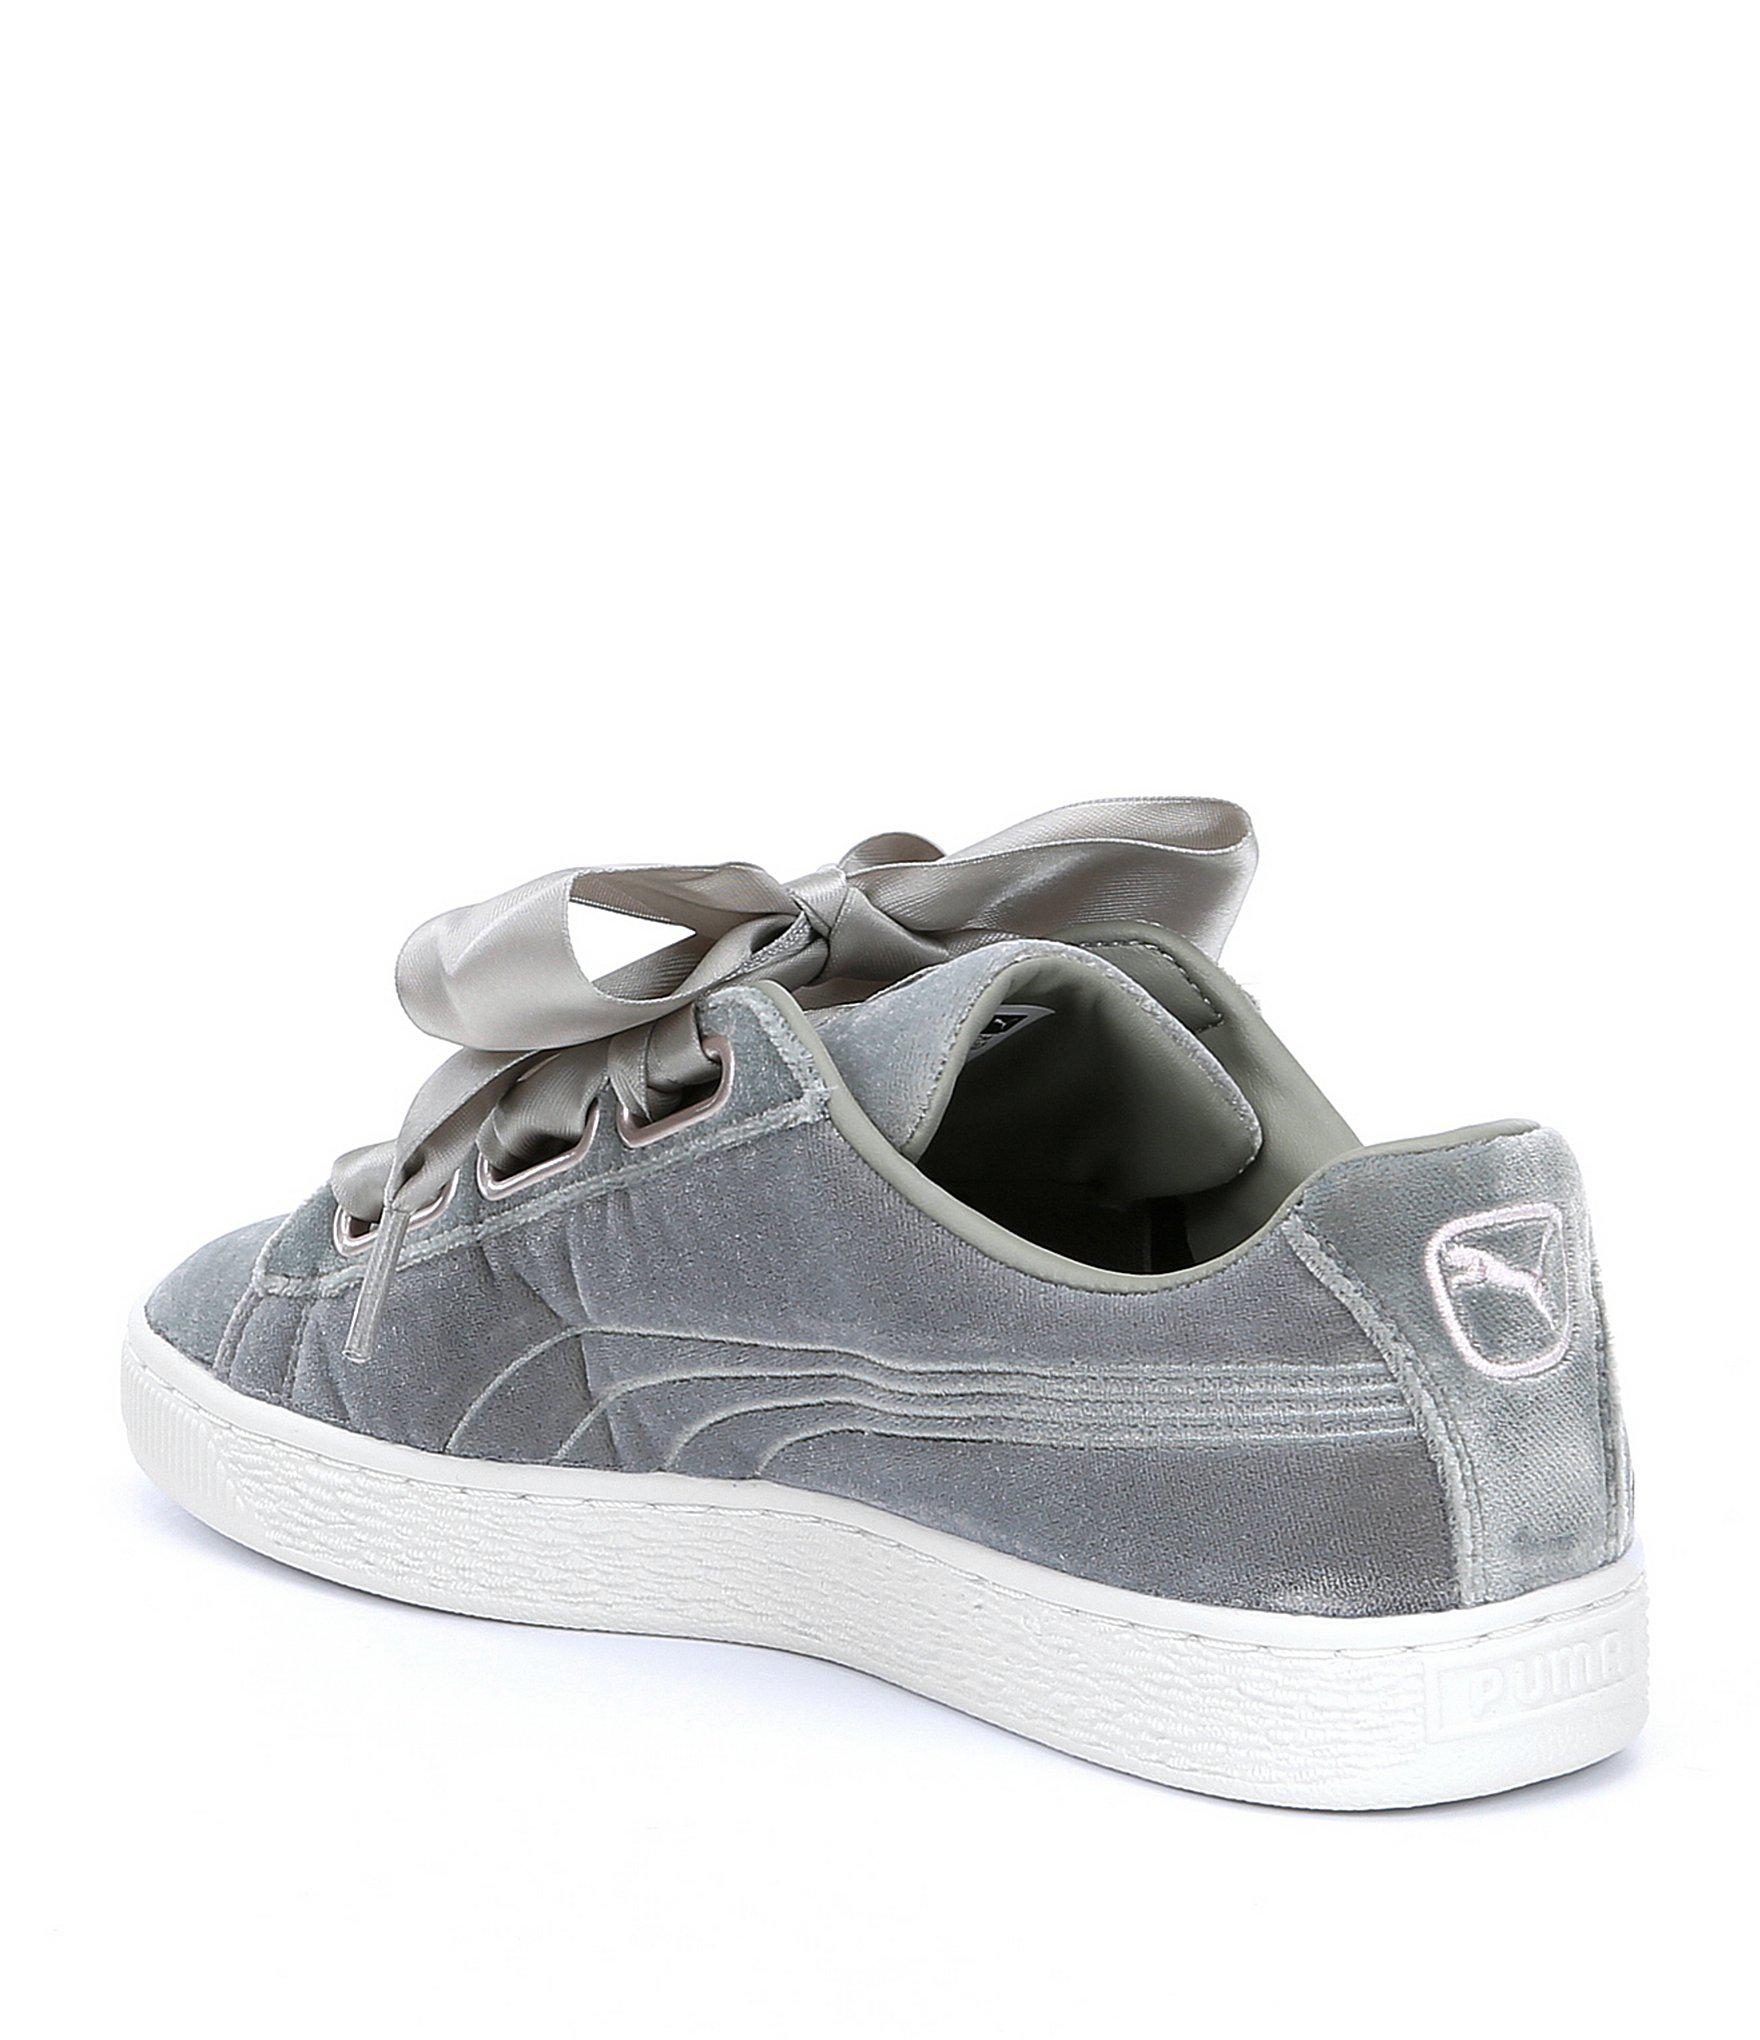 2f125e35711 Lyst - PUMA Basket Heart Hyper Floral Embroidered Velvet Sneakers in ...